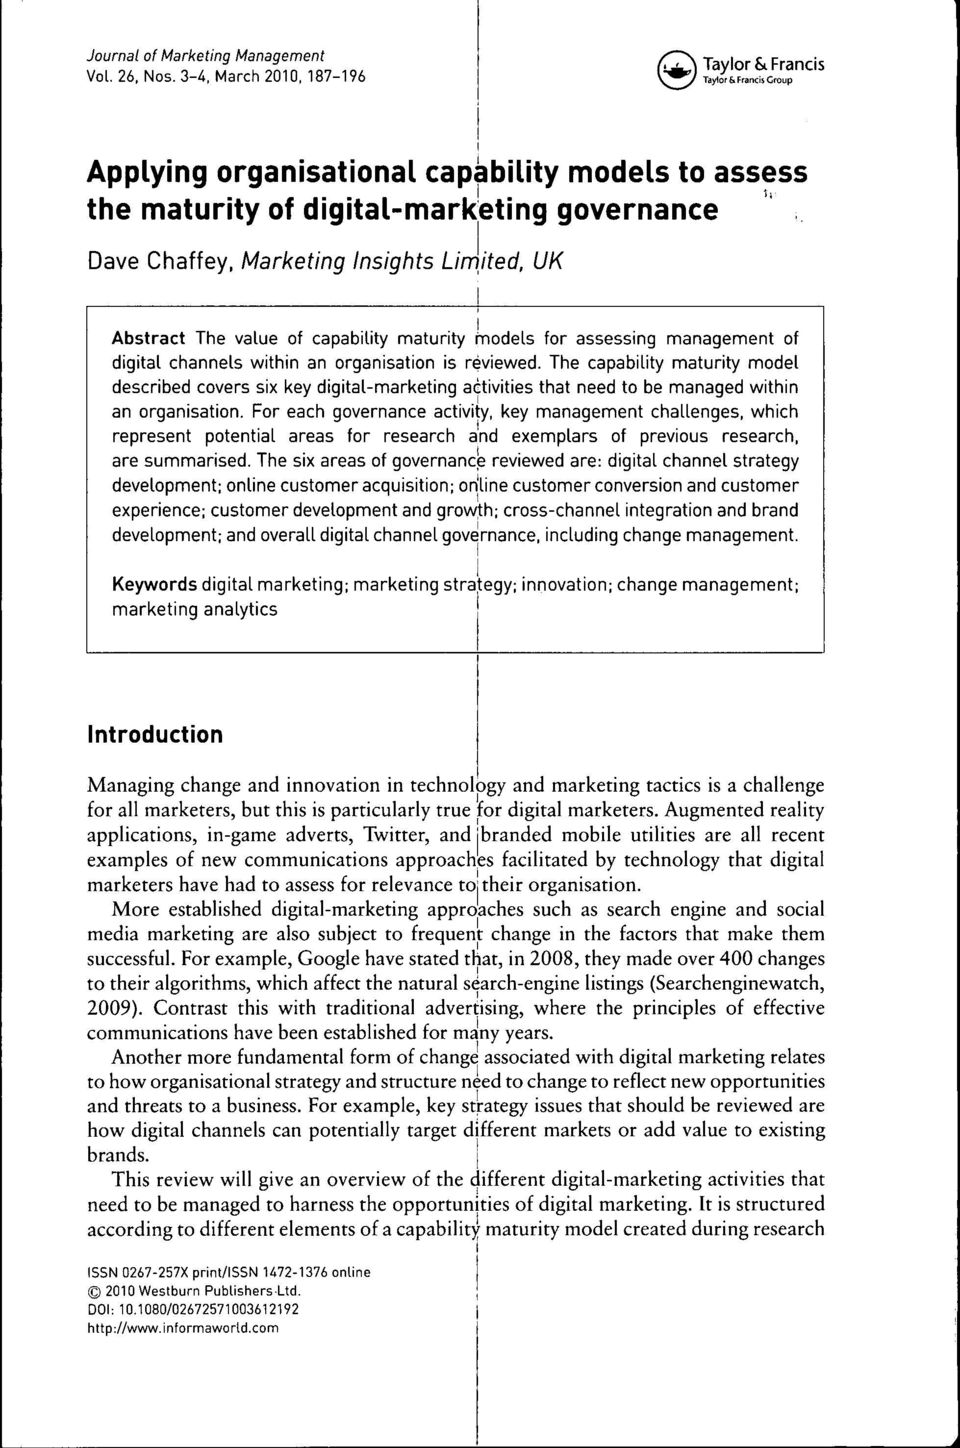 Limited, UK Abstract The value of capability maturity fnodels for assessing nnanagement of digital channels v\/itbin an organisation is reviewed.